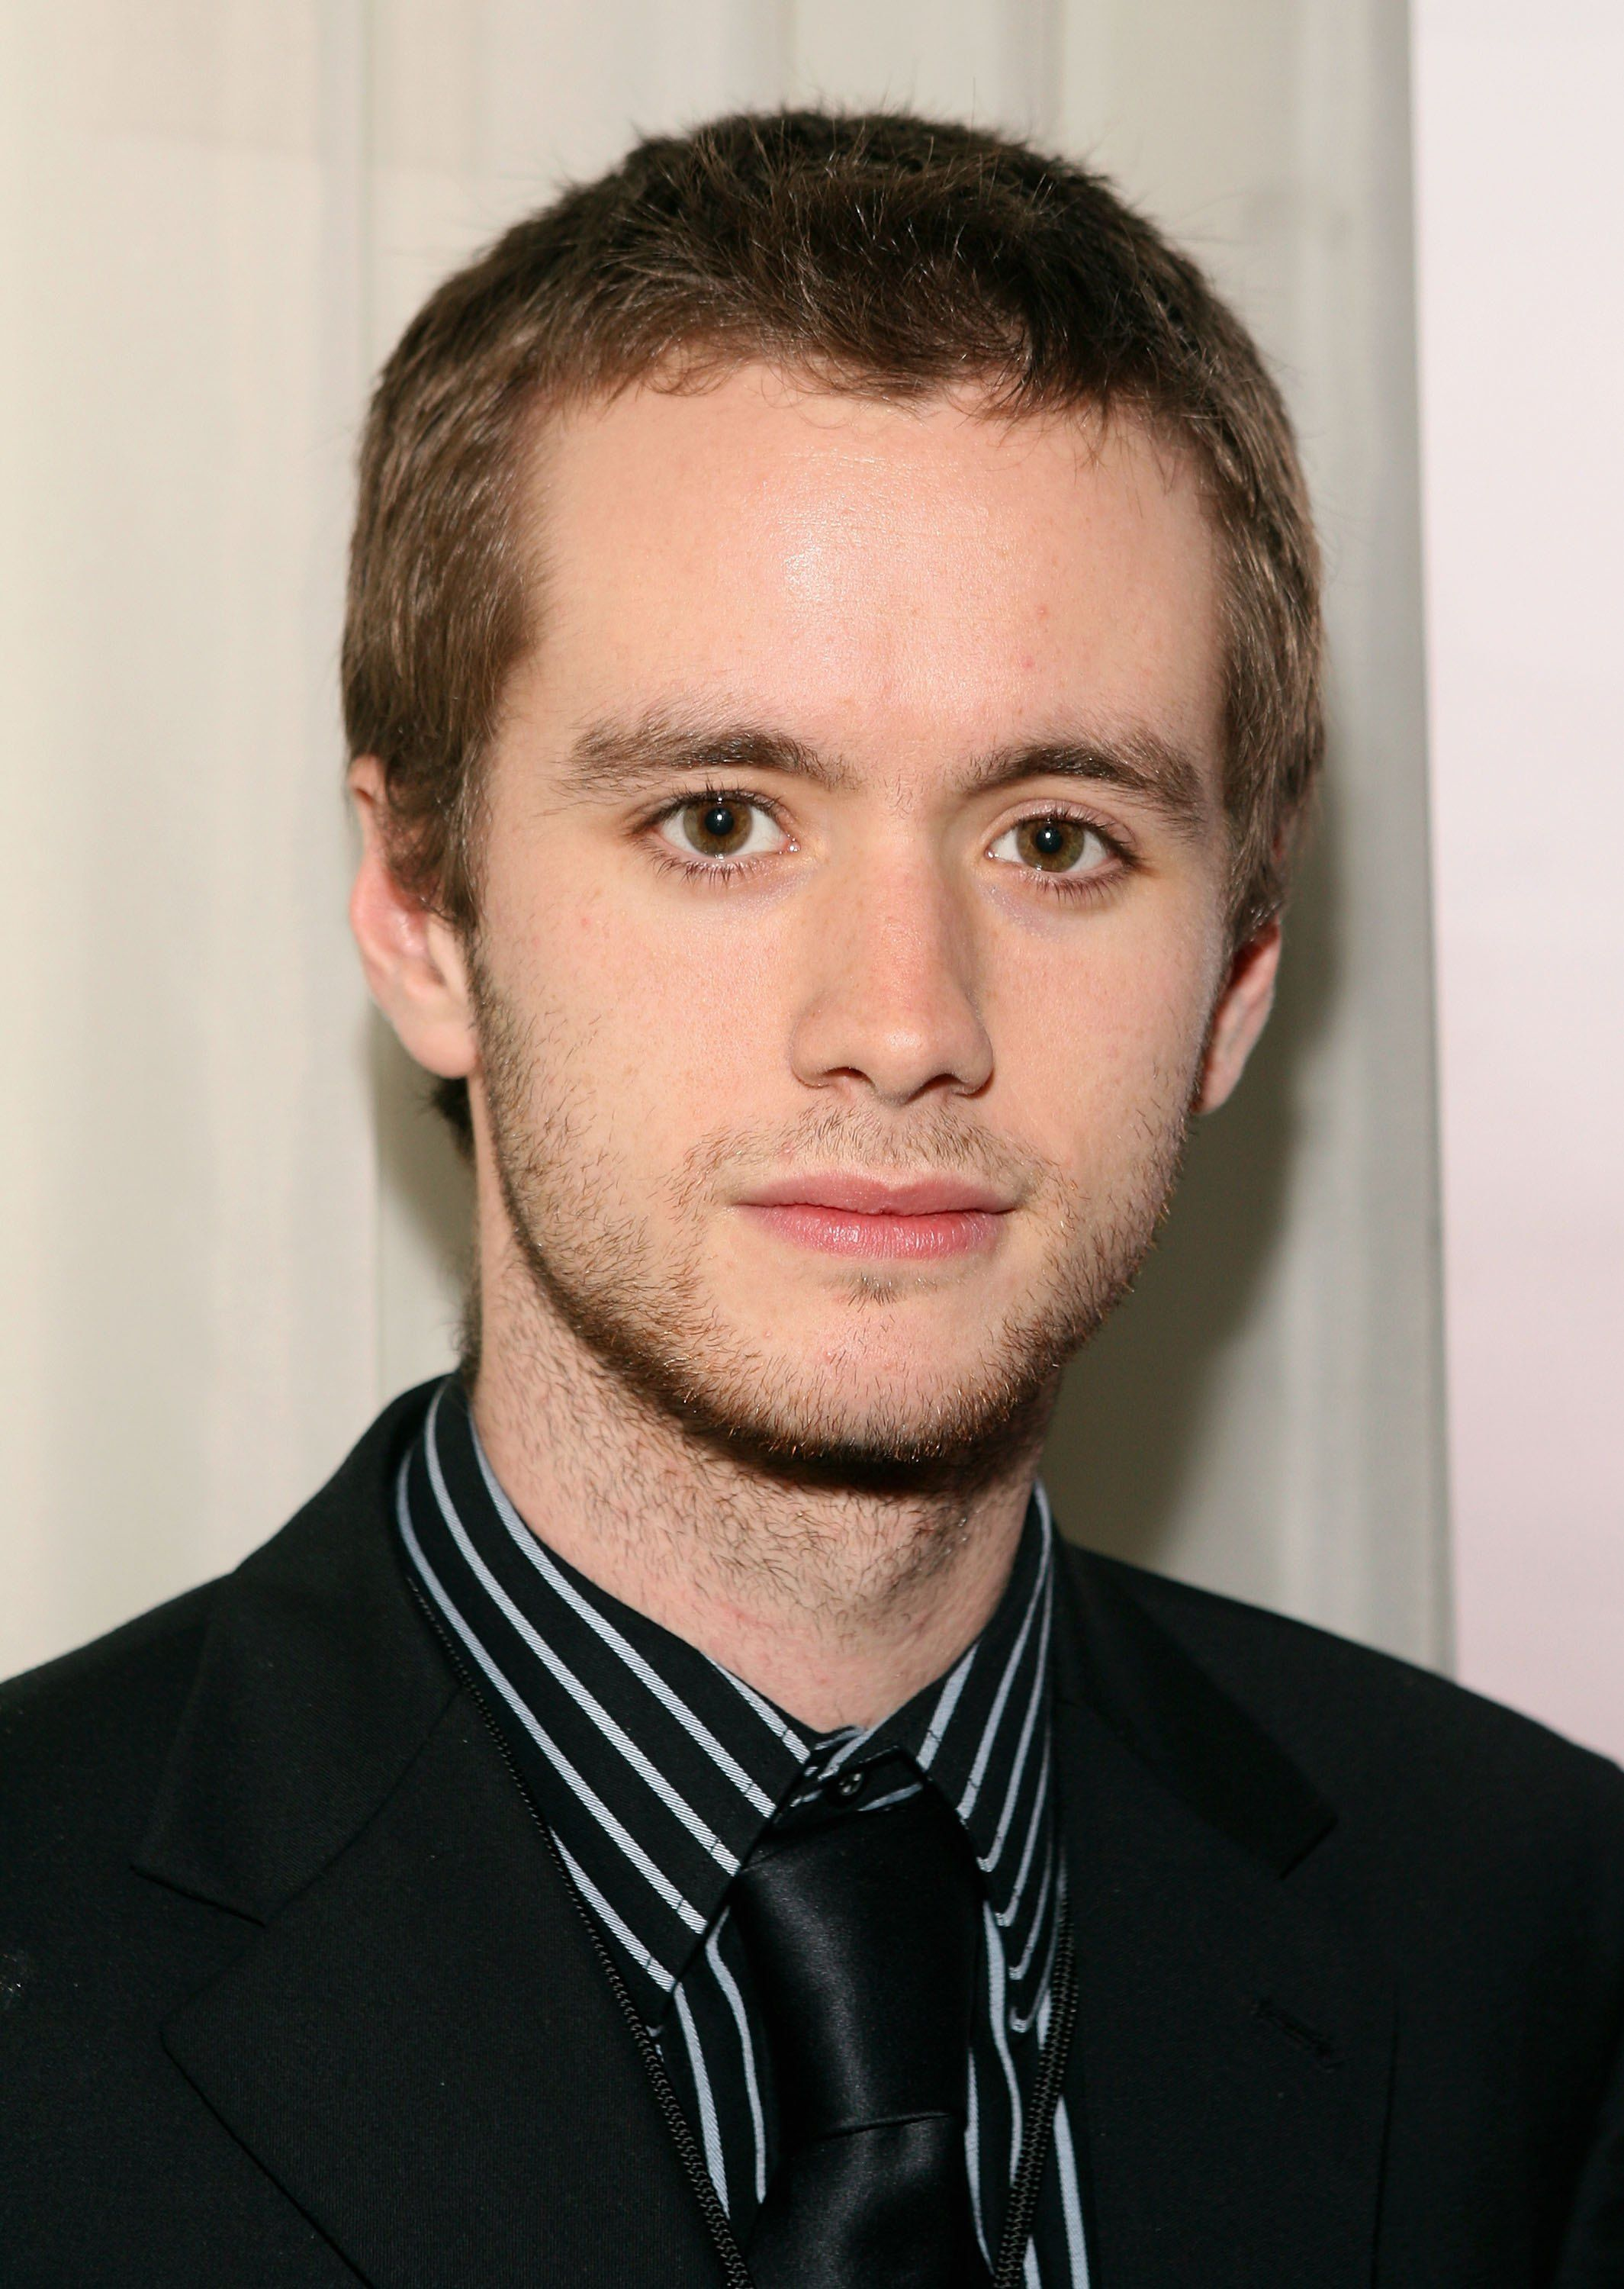 Sean Biggerstaff Microsoft Store You will find below the horoscope of sean biggerstaff with his interactive chart, an excerpt of his astrological portrait and his planetary dominants. sean biggerstaff microsoft store